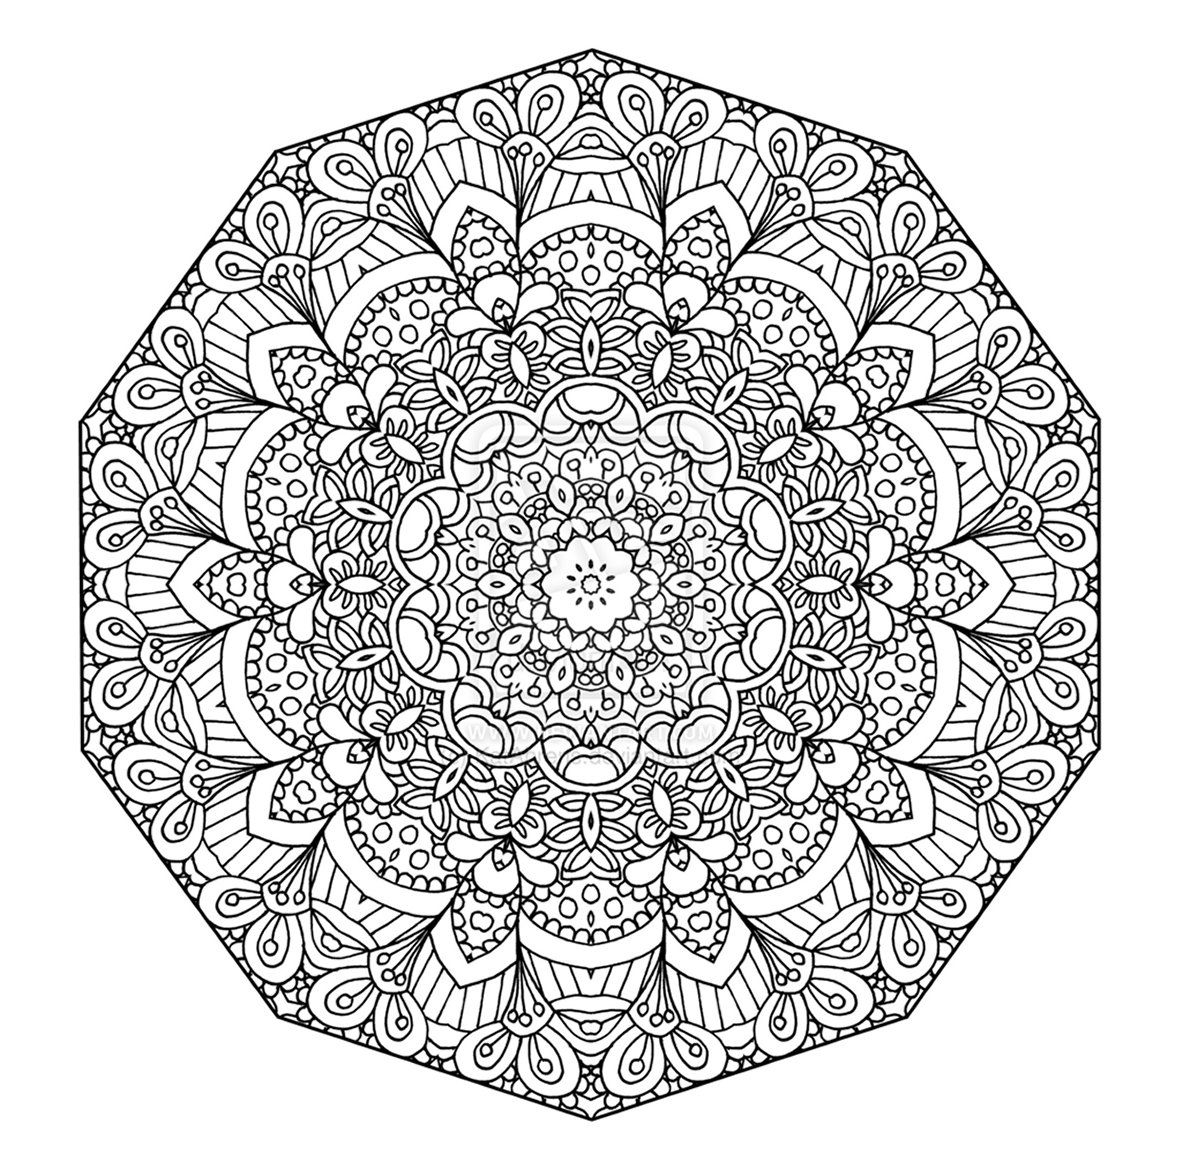 Intricate Mandala Coloring Pages Printable Plex to Print Of Modern Intricate Mandala Coloring Pages Coloring for Good Mandala to Print